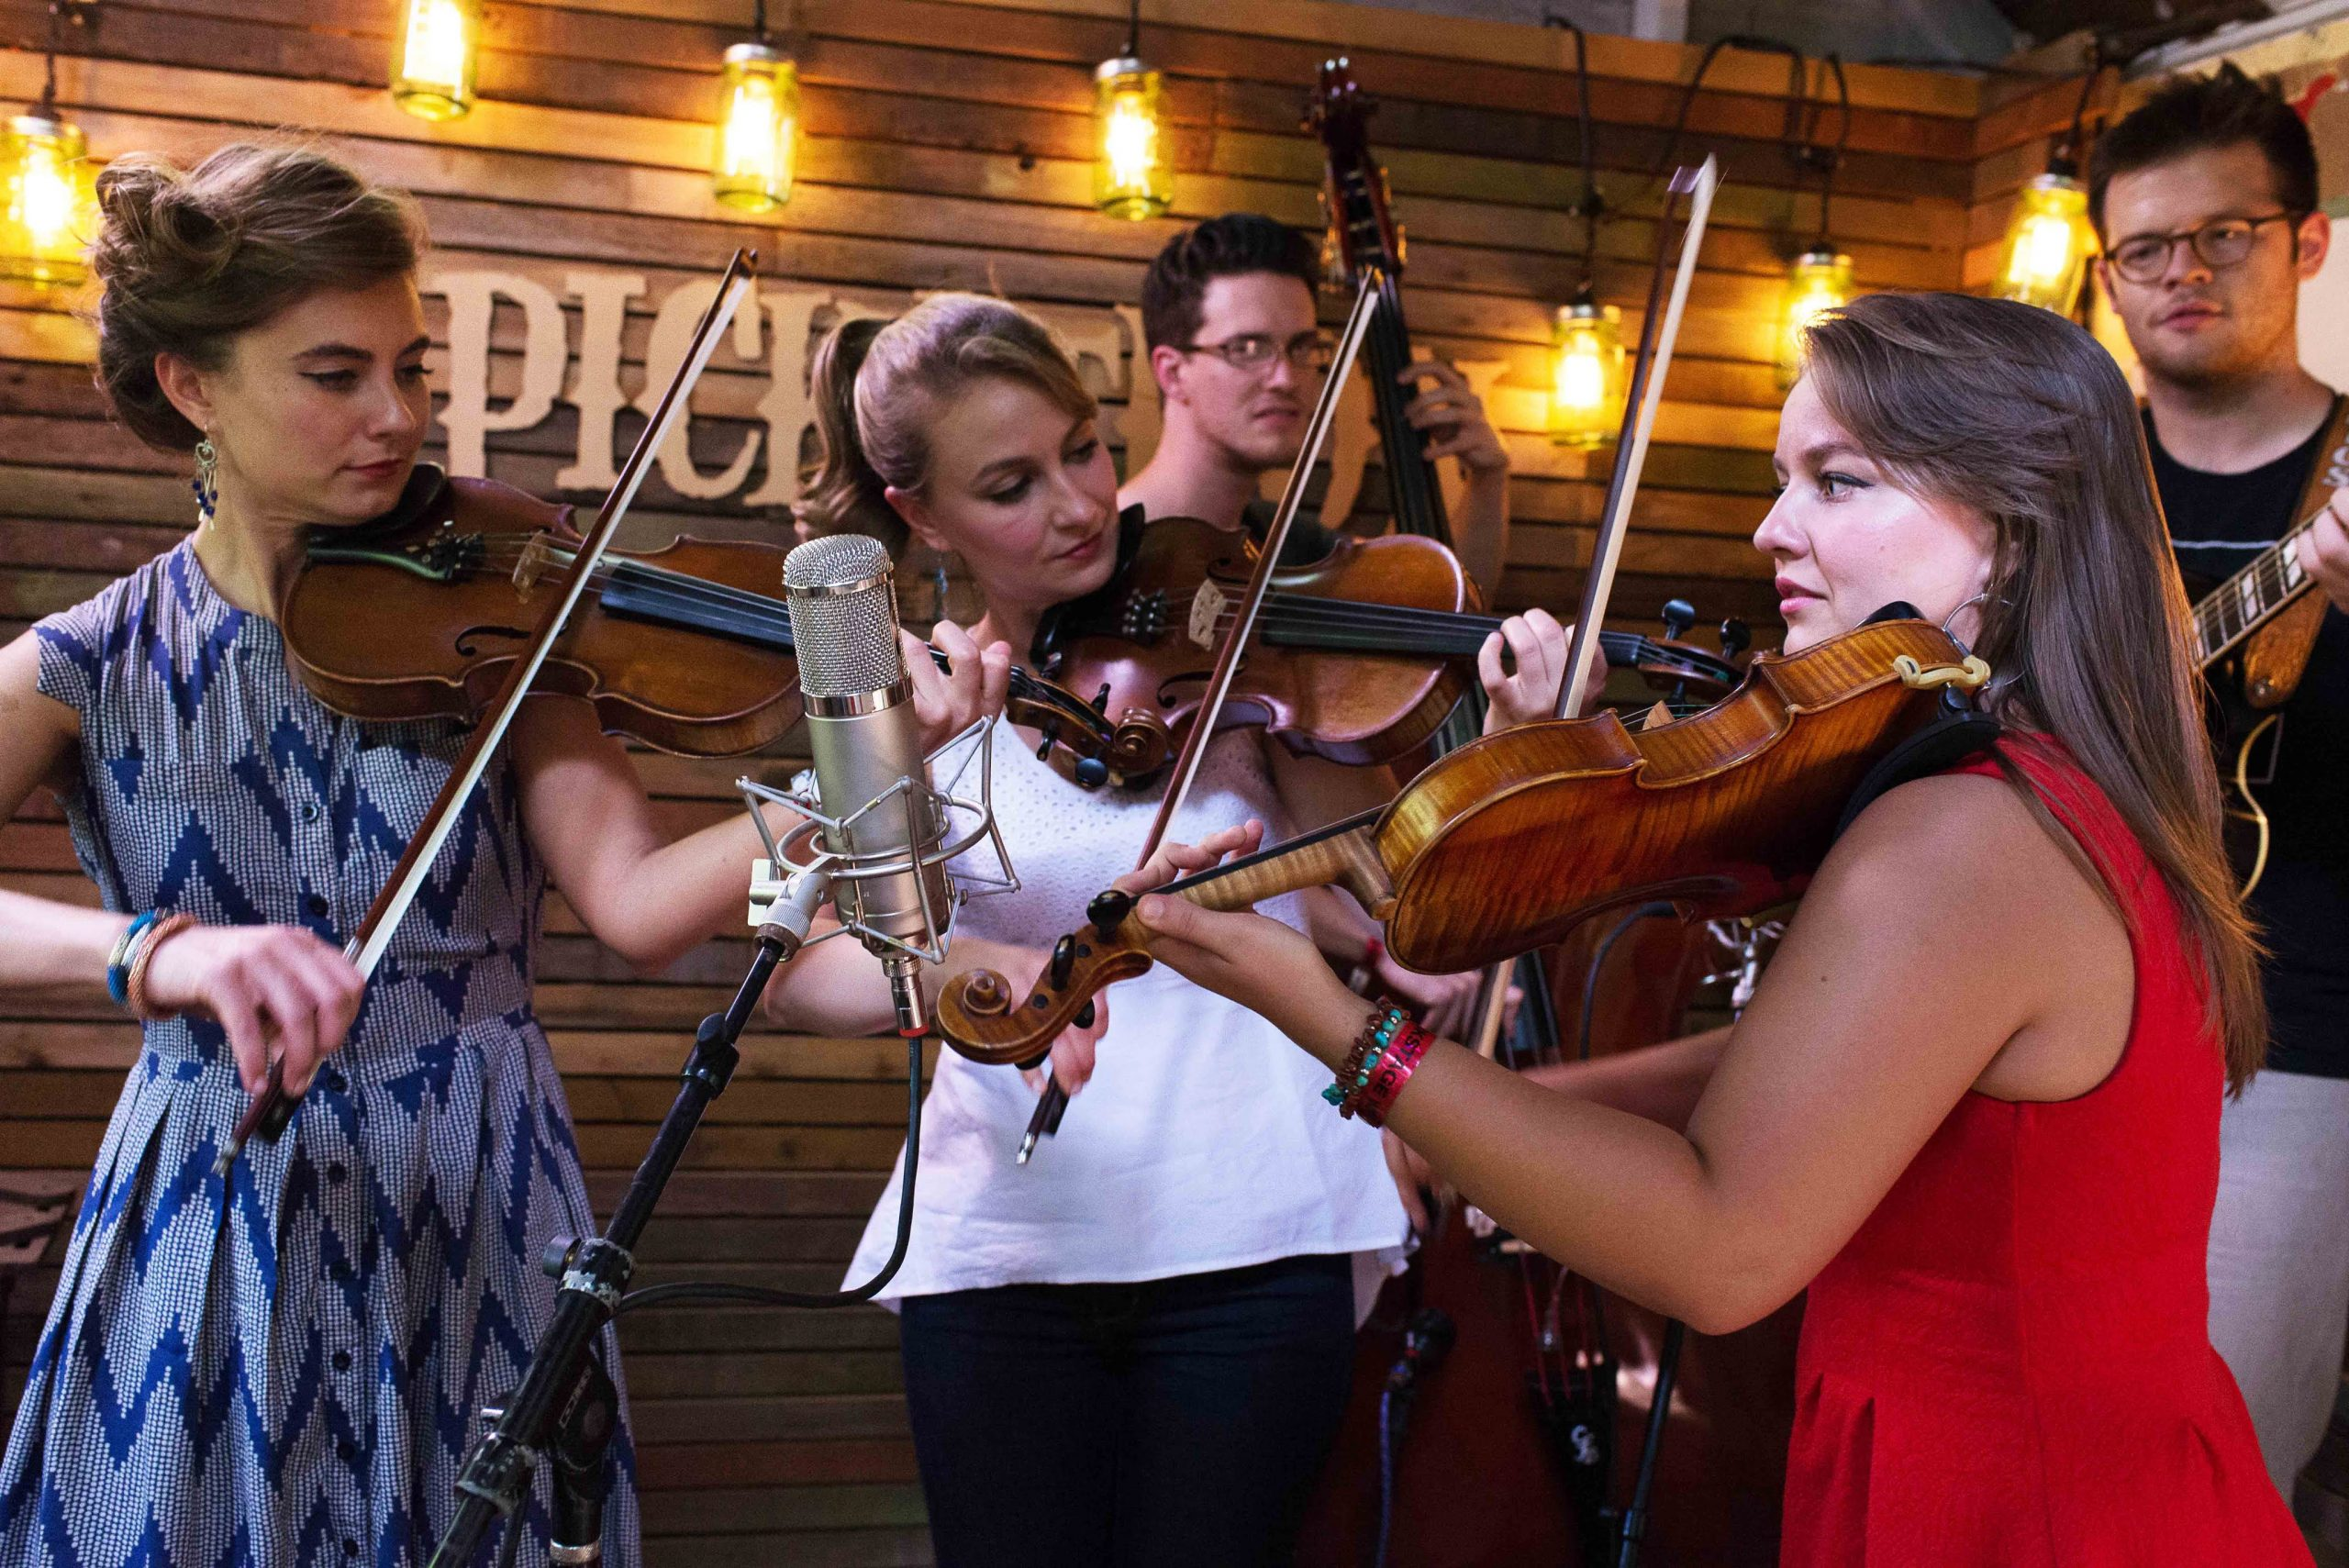 The Quebe Sisters Swing Into Pinedale April 14